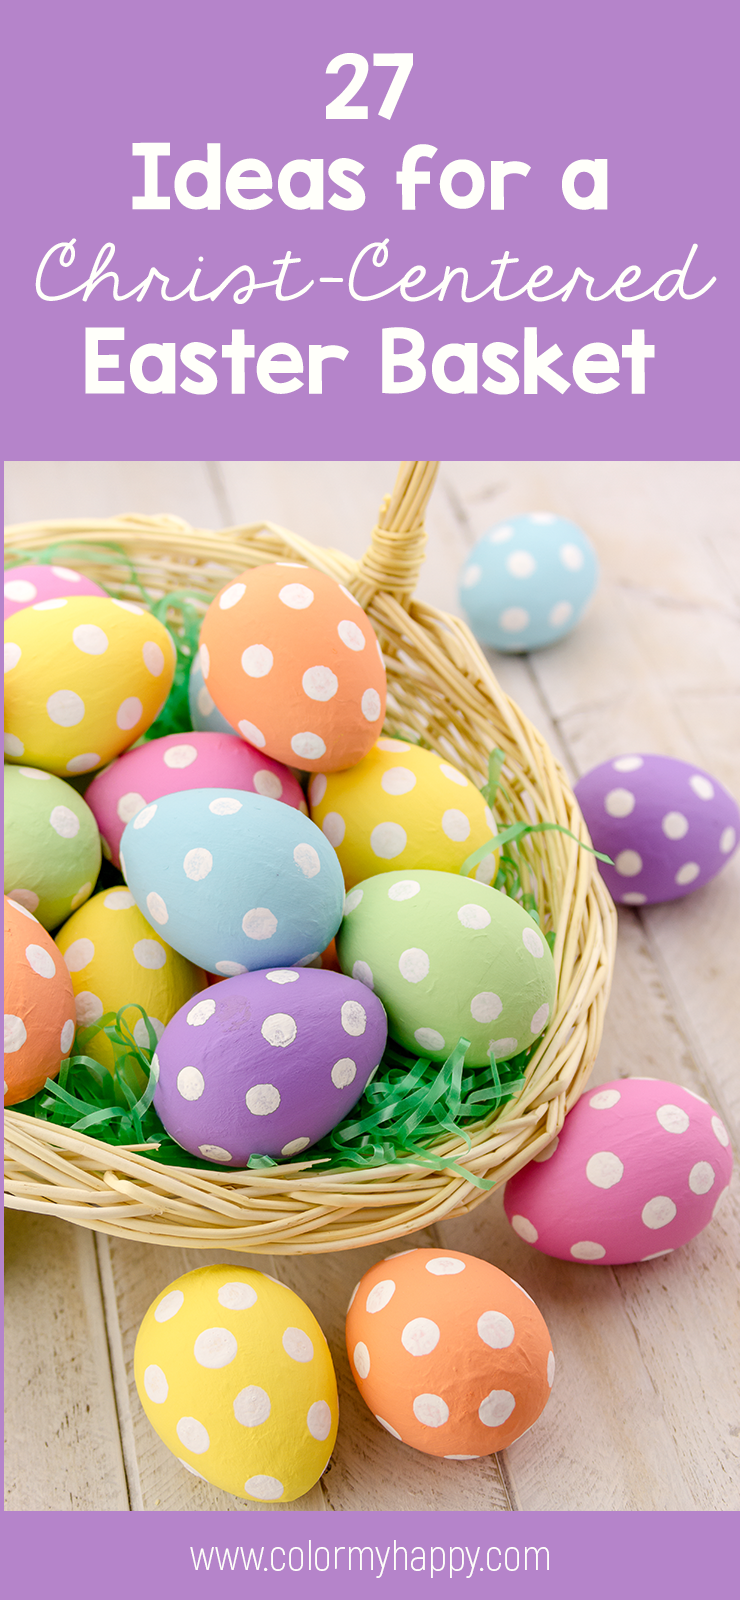 A basket of colorful polka dotted eggs